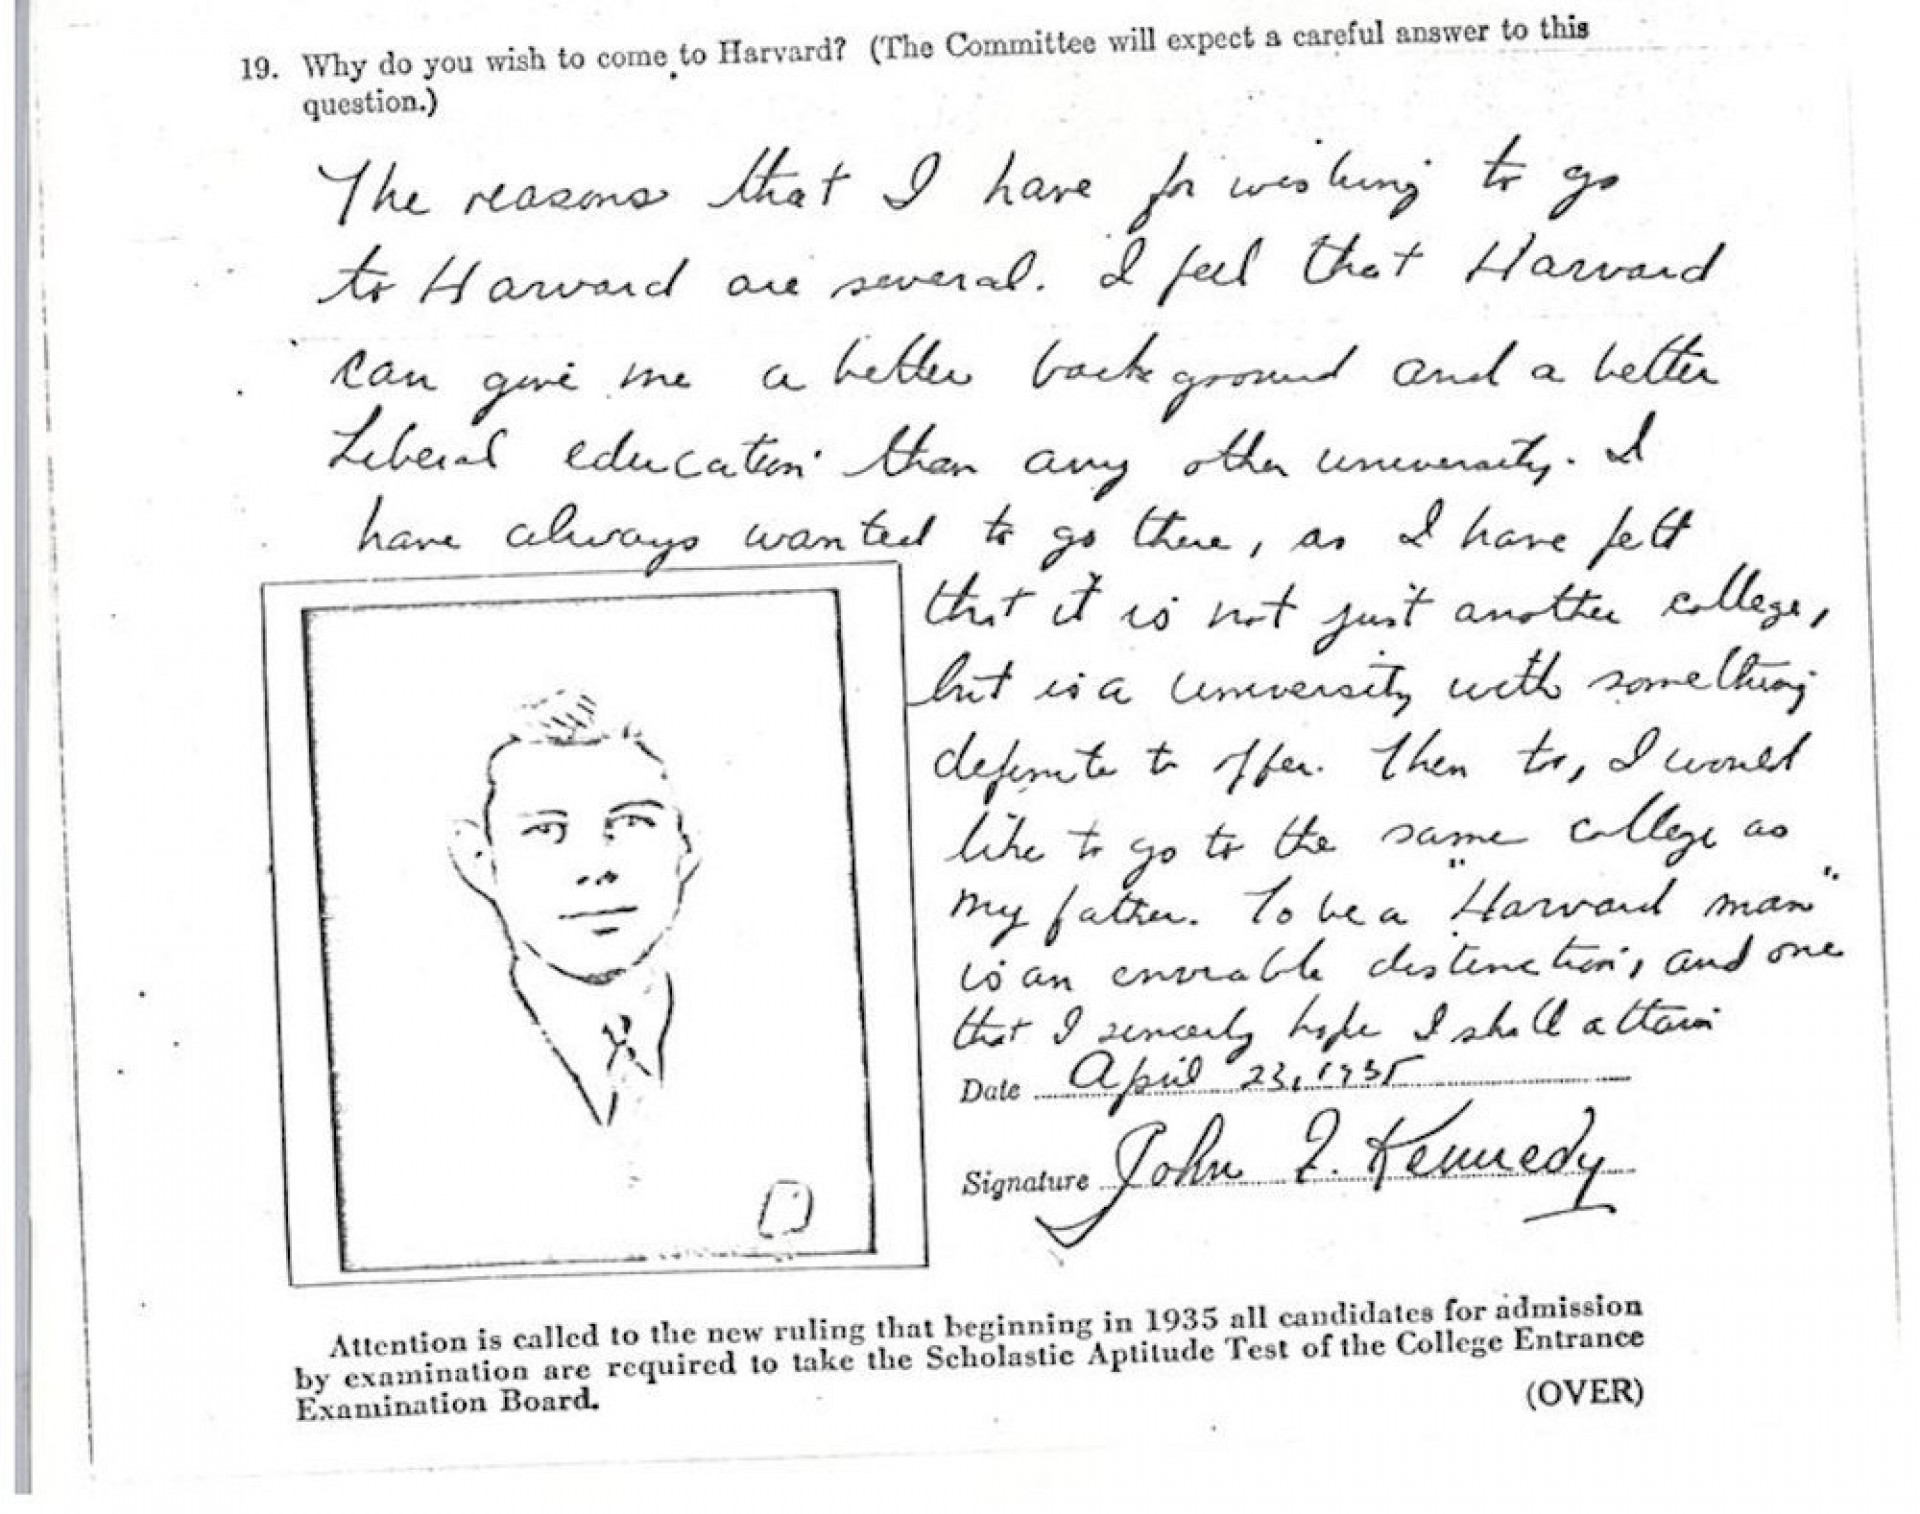 021 Essay Example John Kennedy Jfk Harvard University Application Png College Amazing Entry Admissions About Autism Tips Admission Examples Ivy League 1920